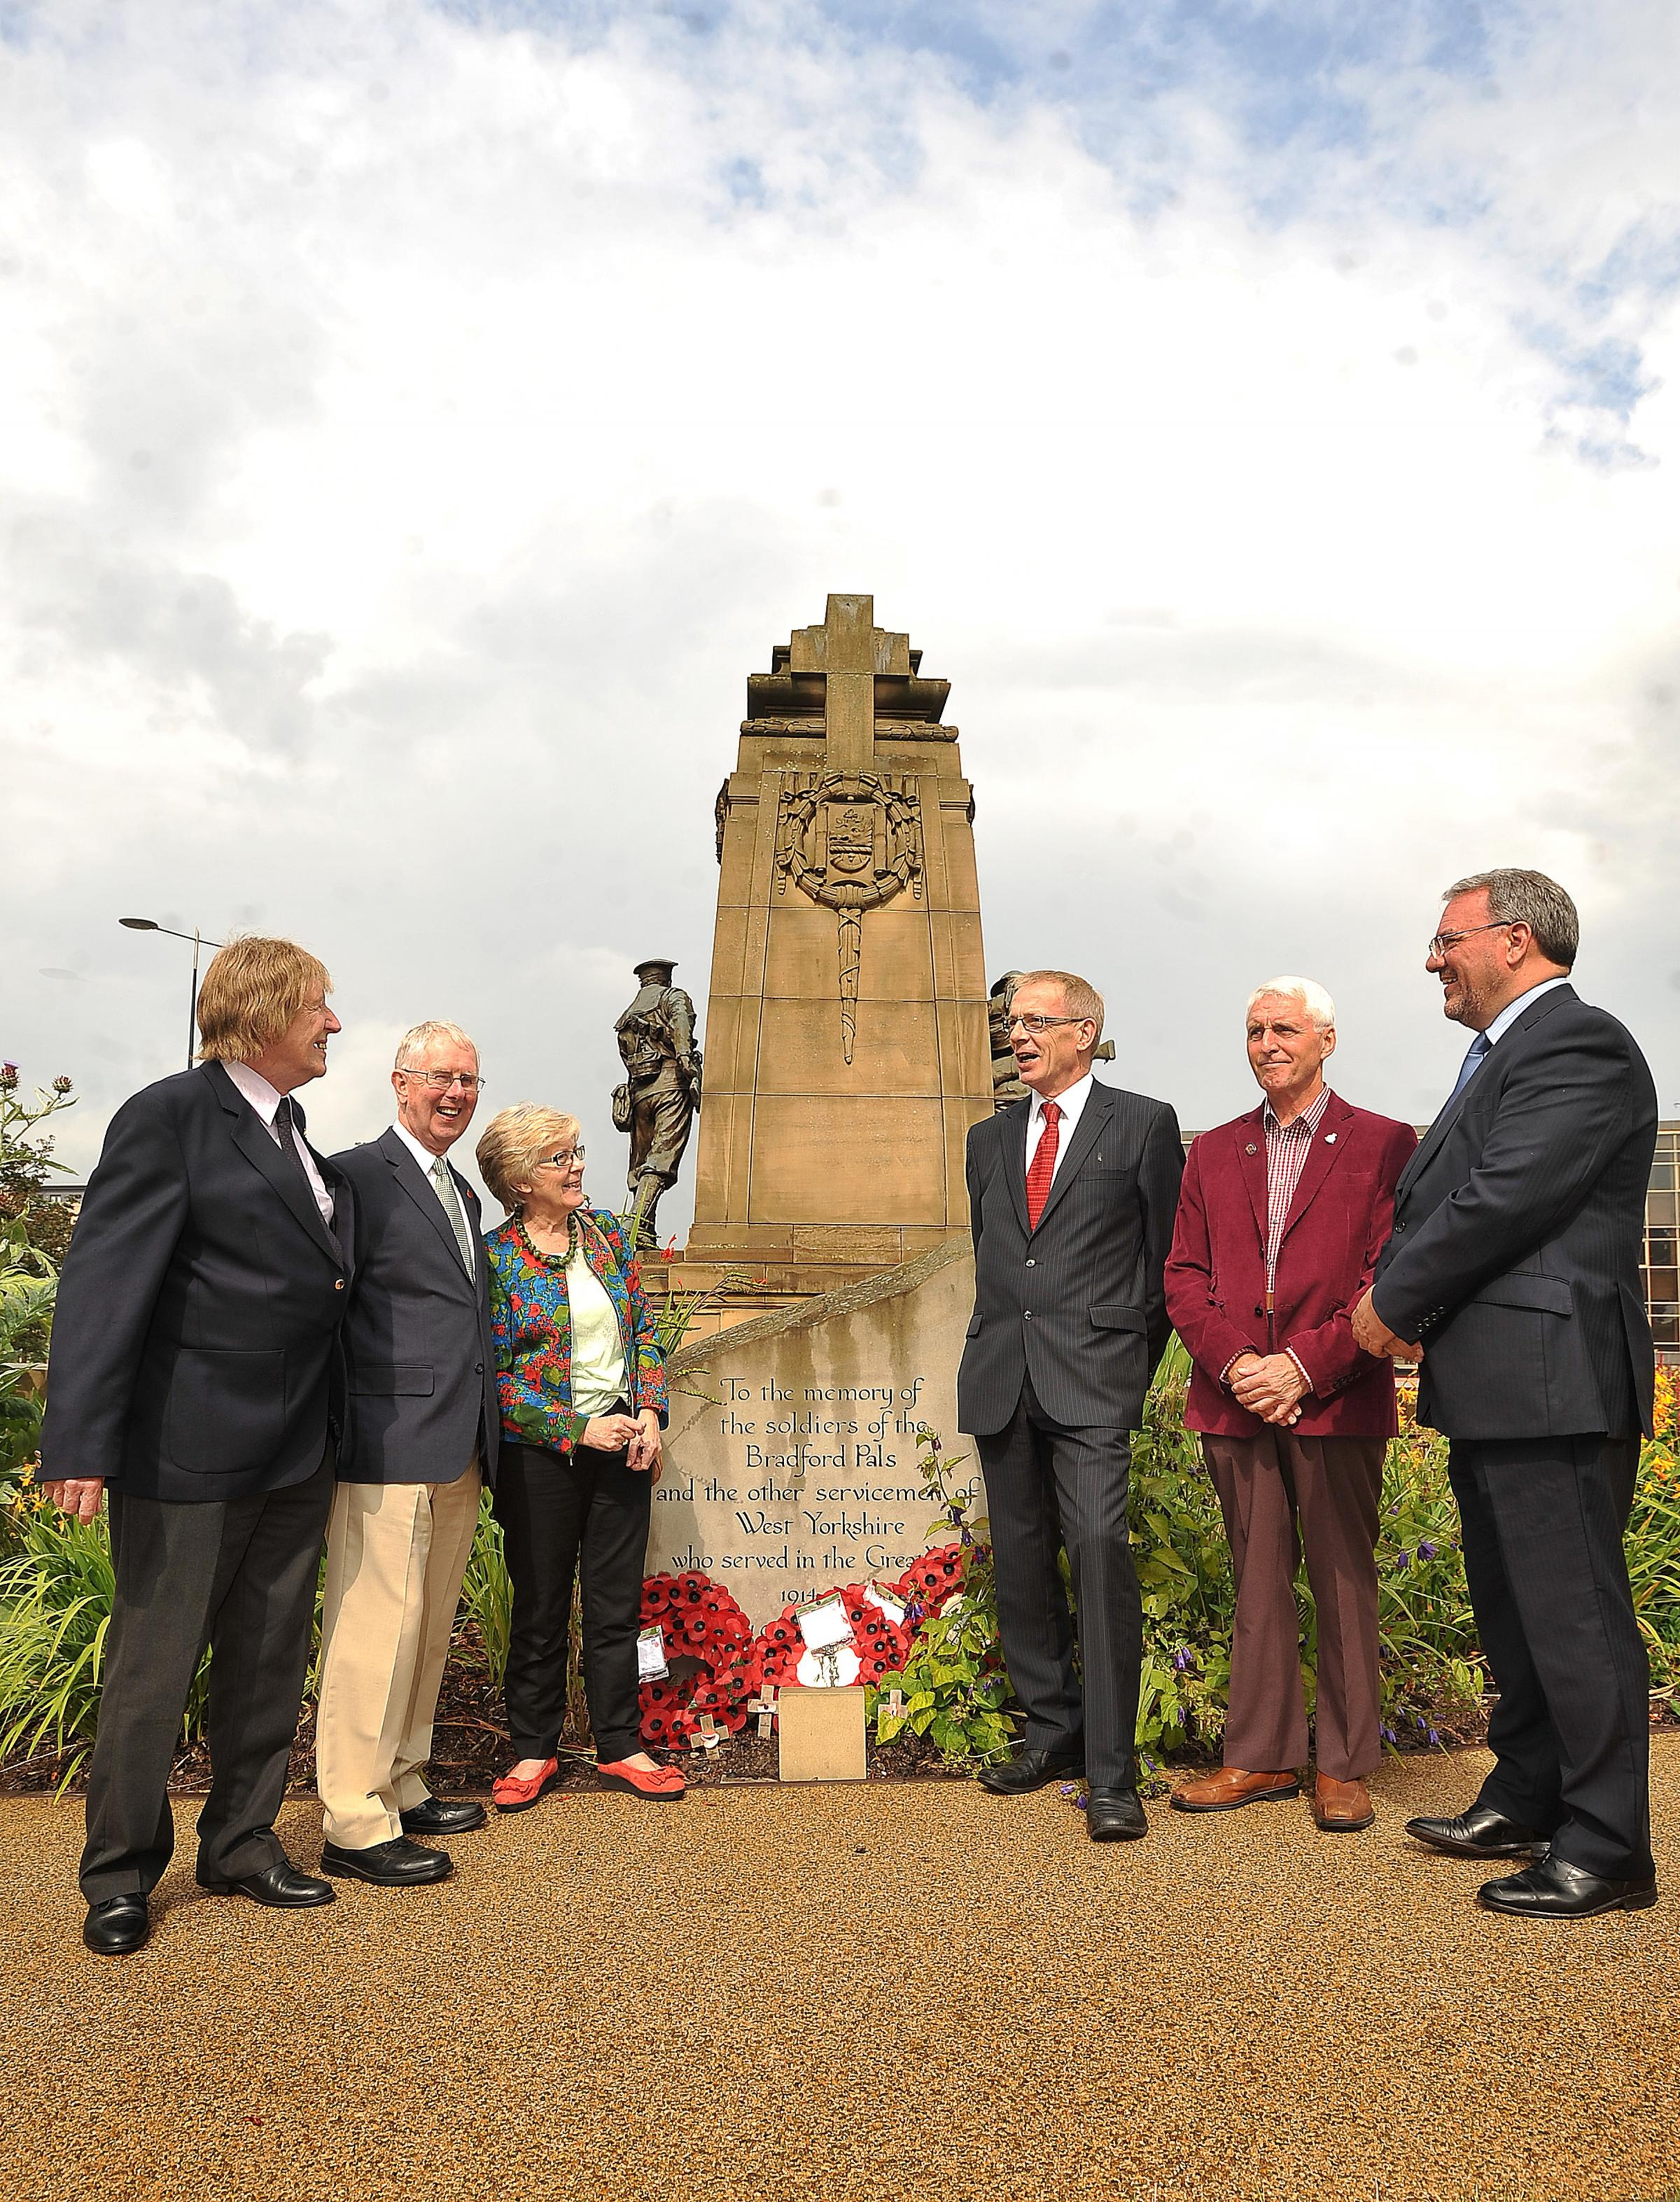 APPEAL: At the announcement of the appeal last month were, (from left), Bradford WW1 Group members, Gerald Beevers, Geoff Barker, Tricia Platts, Bradford Council leader David Green, Councillor John Ruding and Telegraph & Argus Editor, Perry Austin- Cl